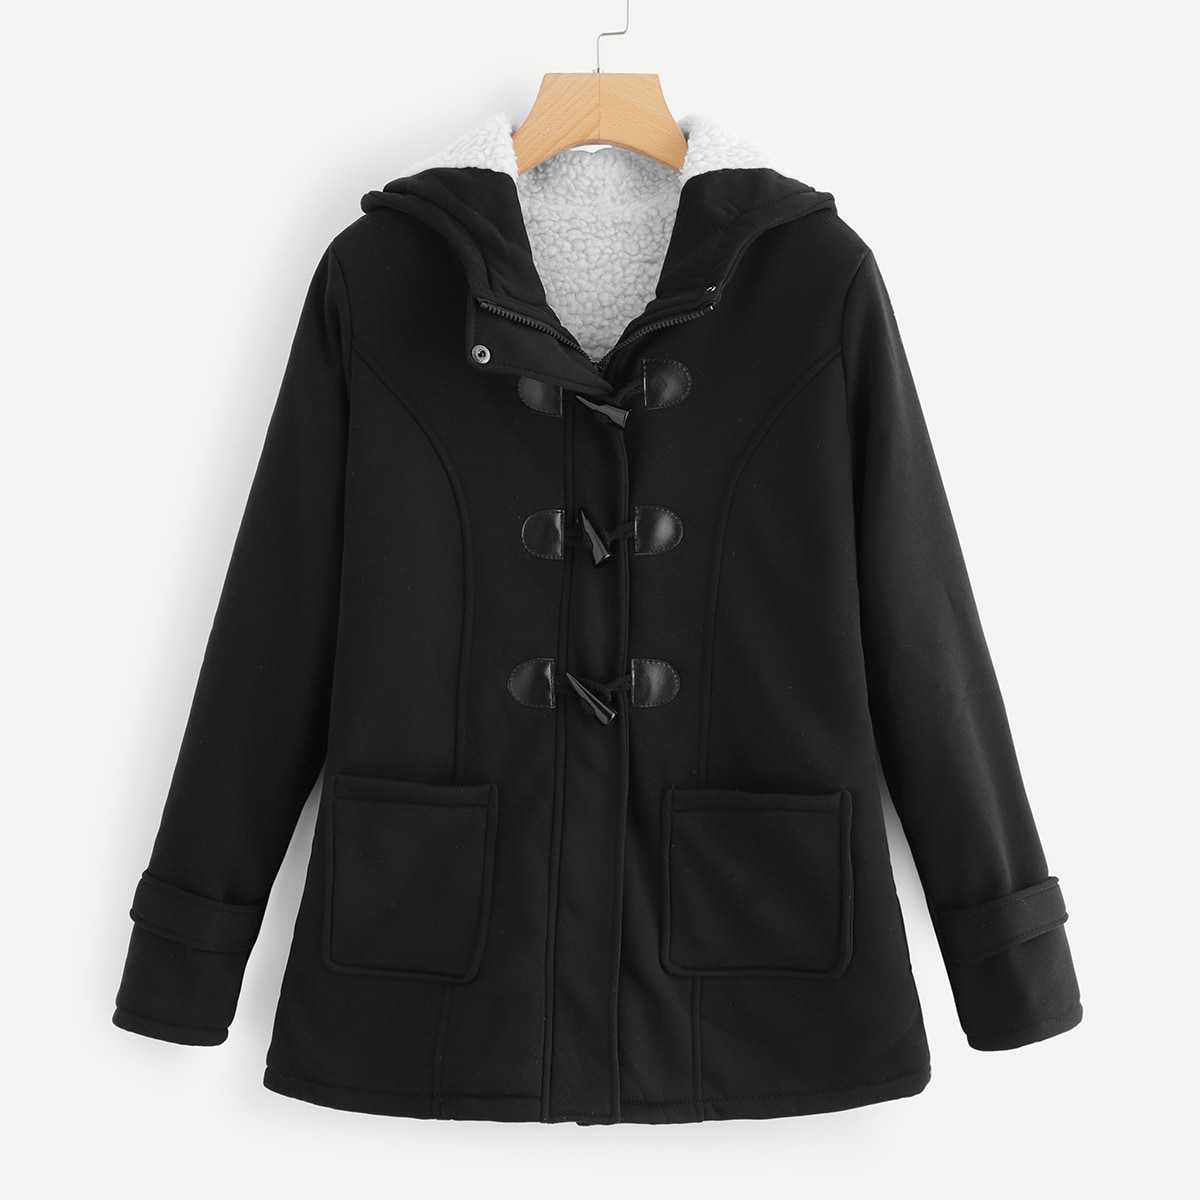 Horn Buckle Dual Pocket Coat in Black by ROMWE on GOOFASH